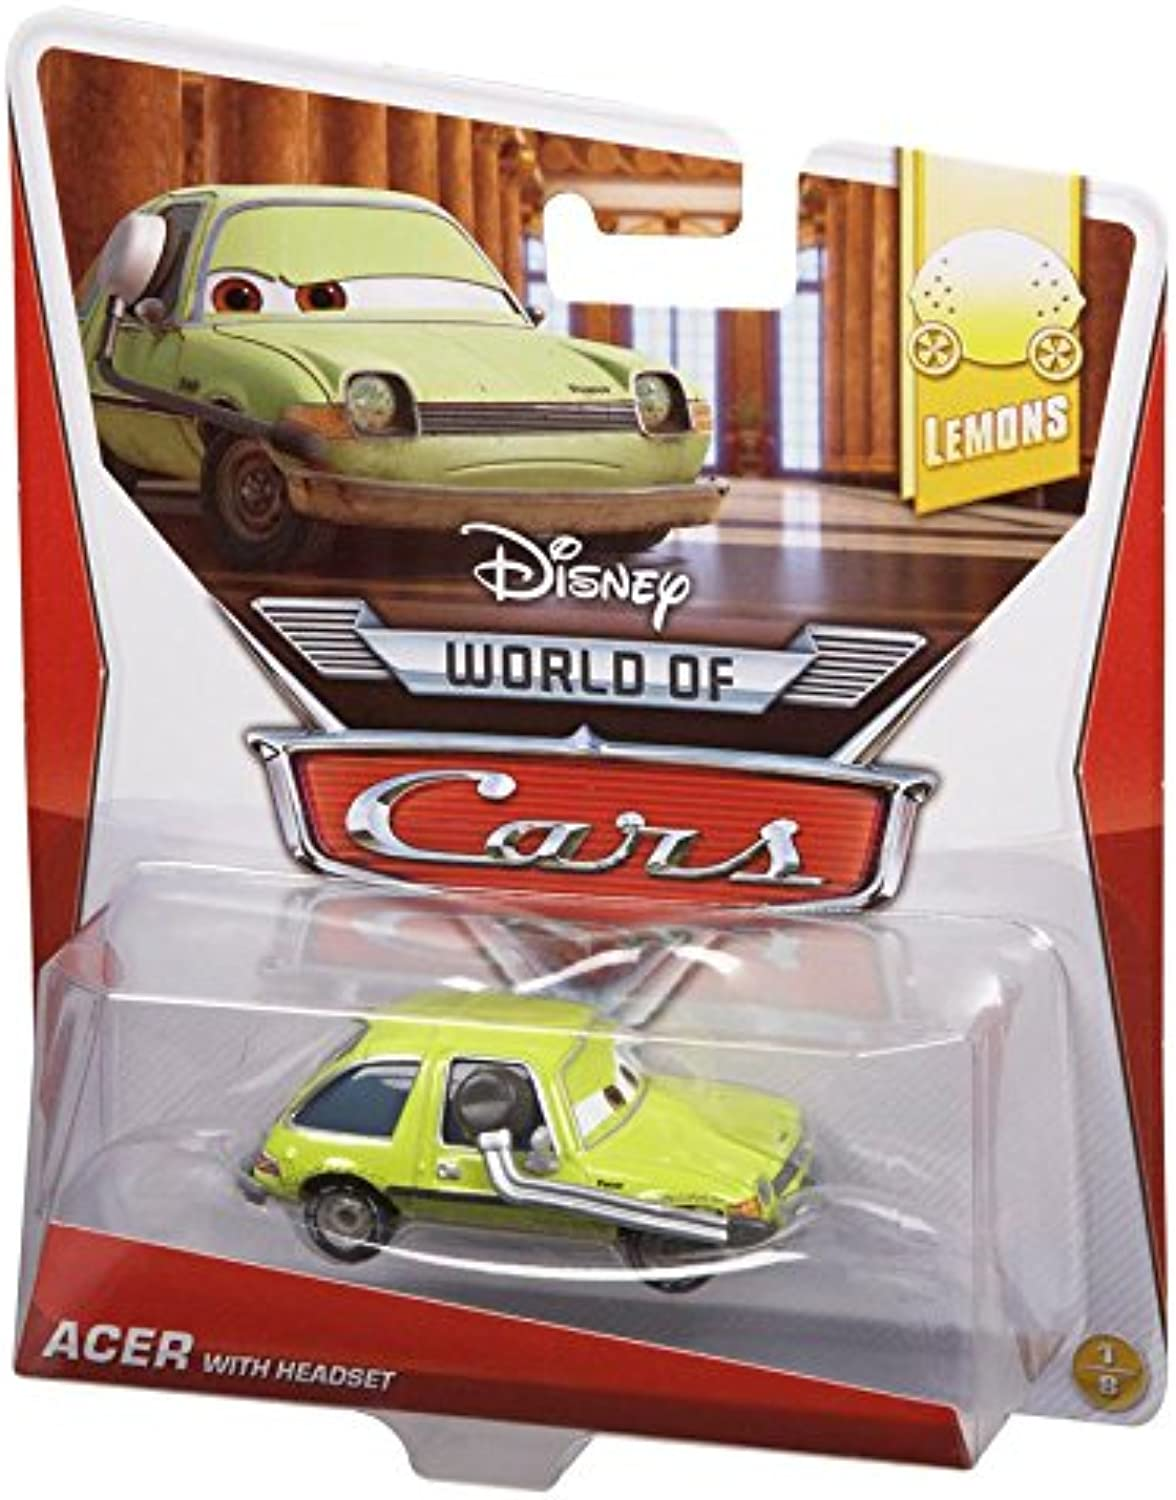 Disney Pixar Cars Acer with Headset Diecast Vehicle